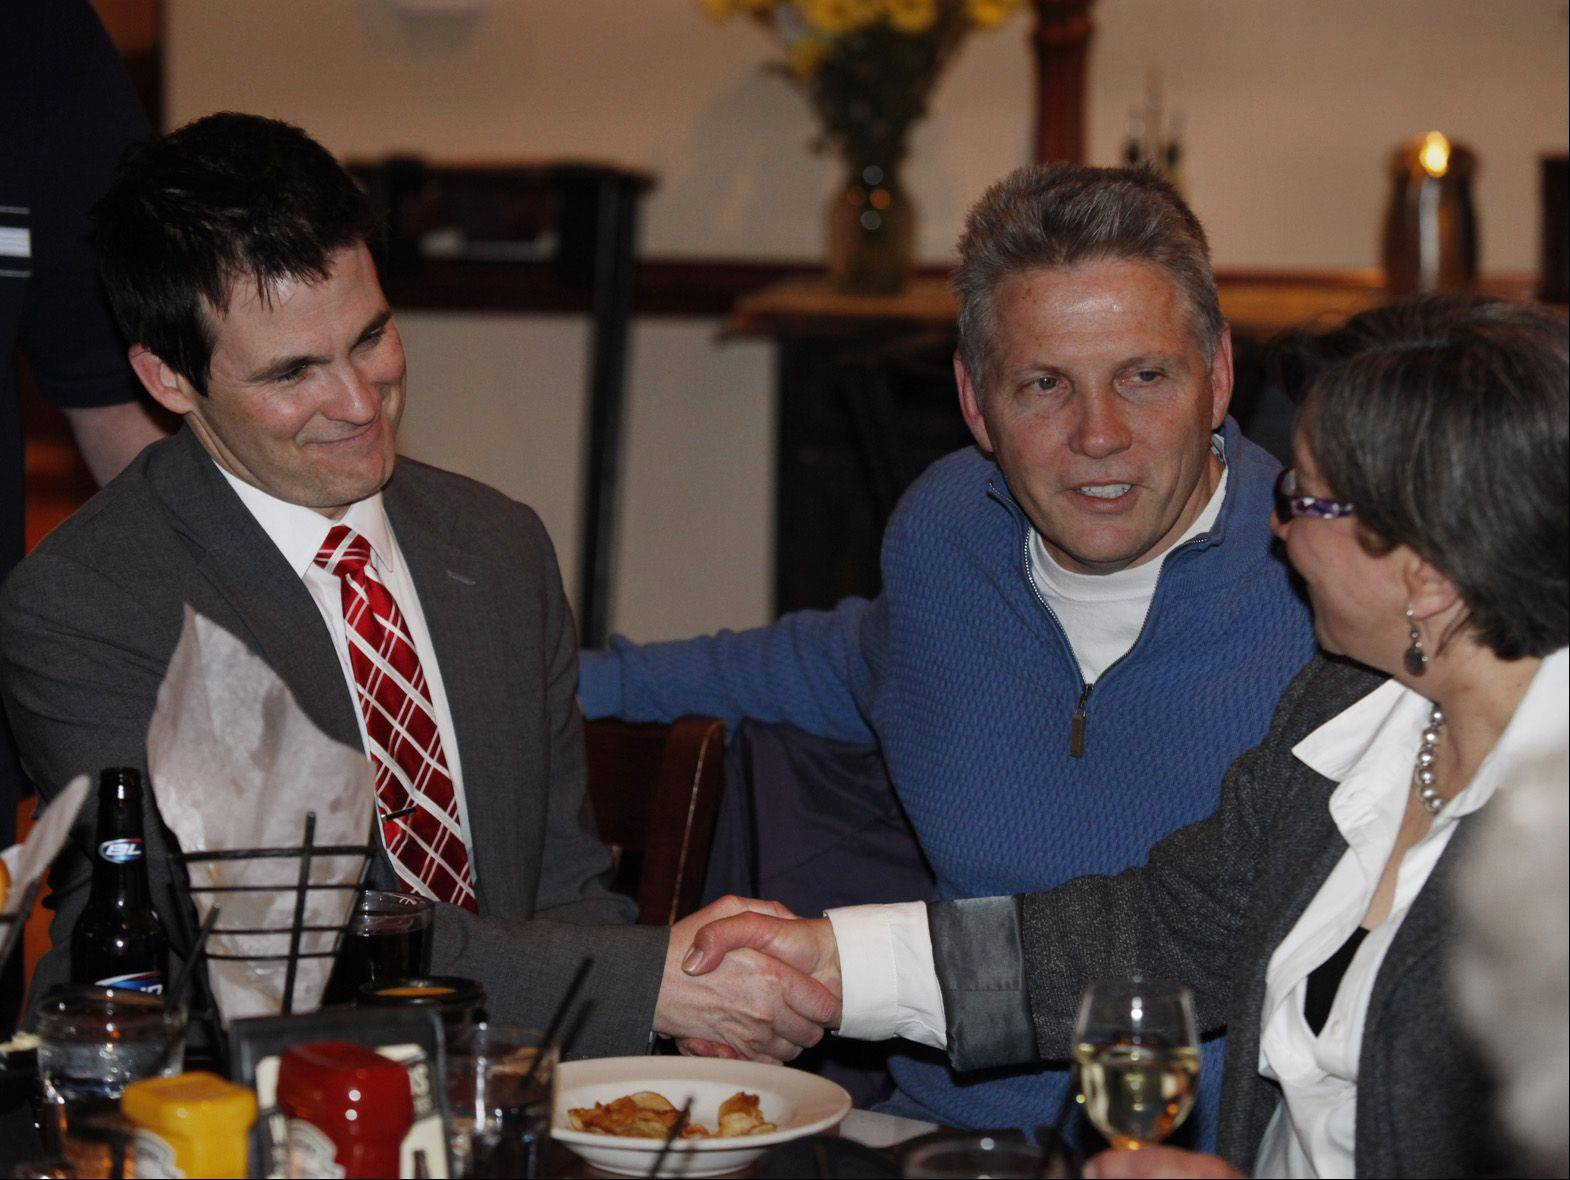 Chris Nelson, left, shakes the hand of supporter Cheryl Anderley, far right, Tuesday night at Emmett's Tavern and Brewing Company in West Dundee. At center is Nelson's campaign manager Don Rage. Nelson was elected as West Dundee village president.